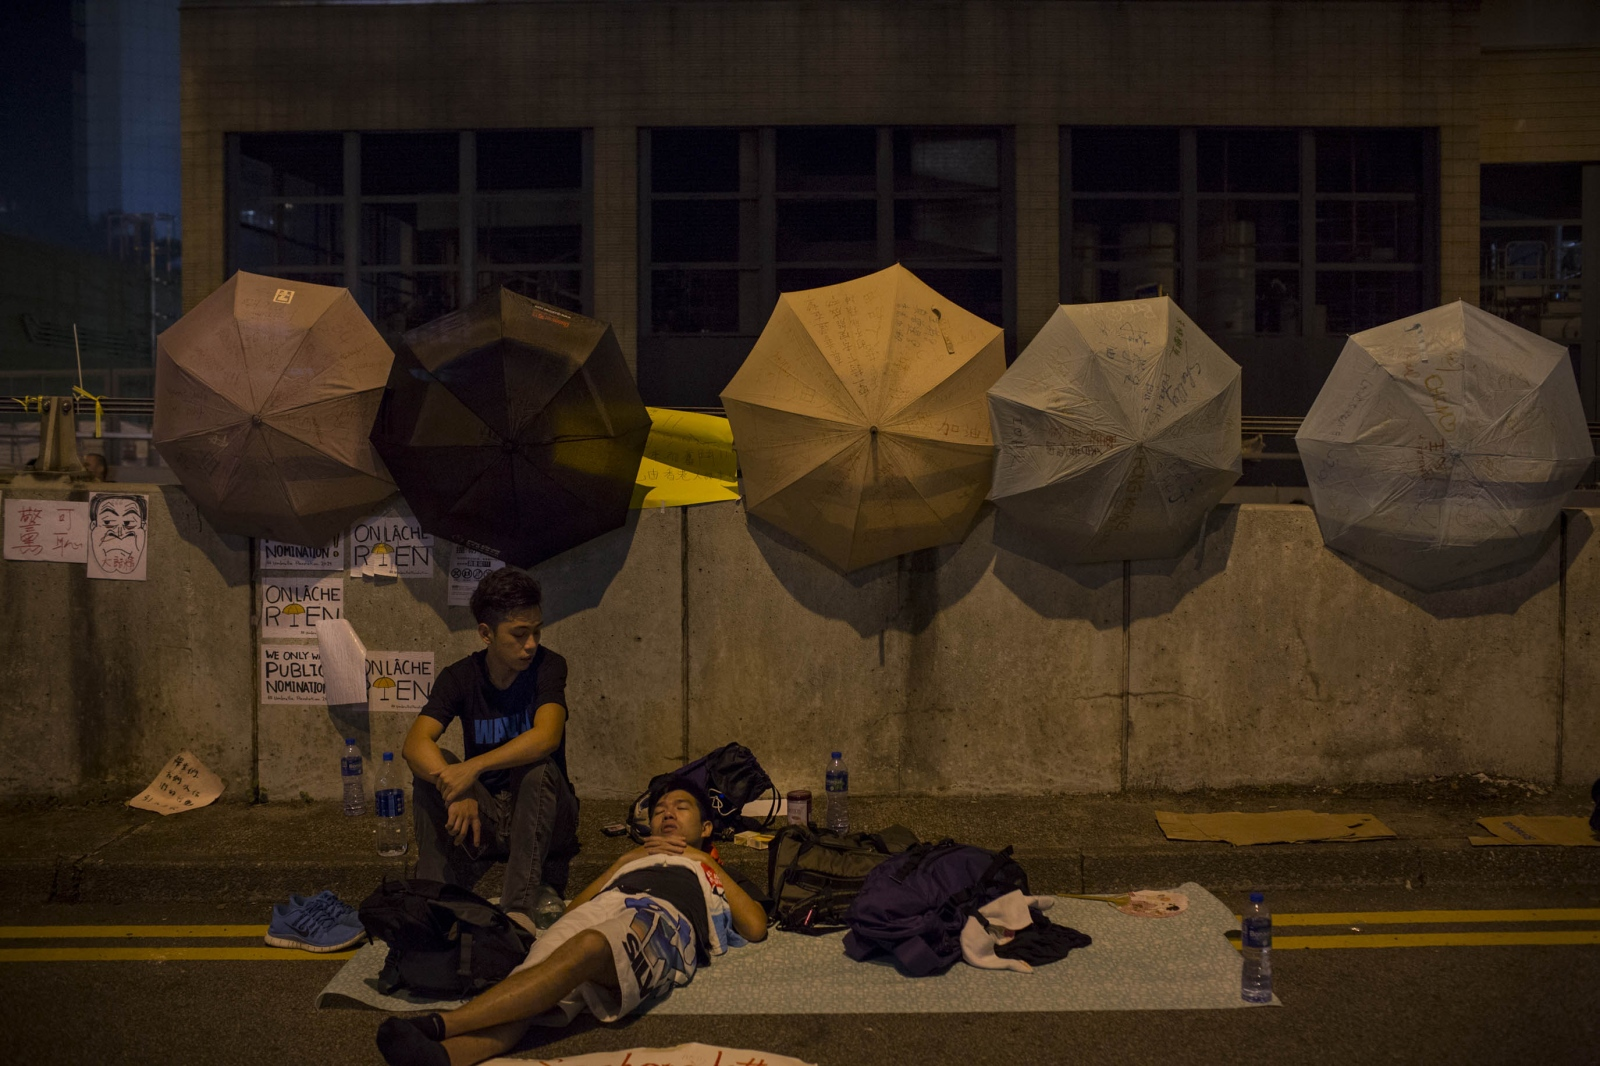 Protestors camp out in the roads of Admiralty district of Hong Kong, in the early hours of October 5, 2014, with umbrellas and pro-democracy posters written in various languages behind them.